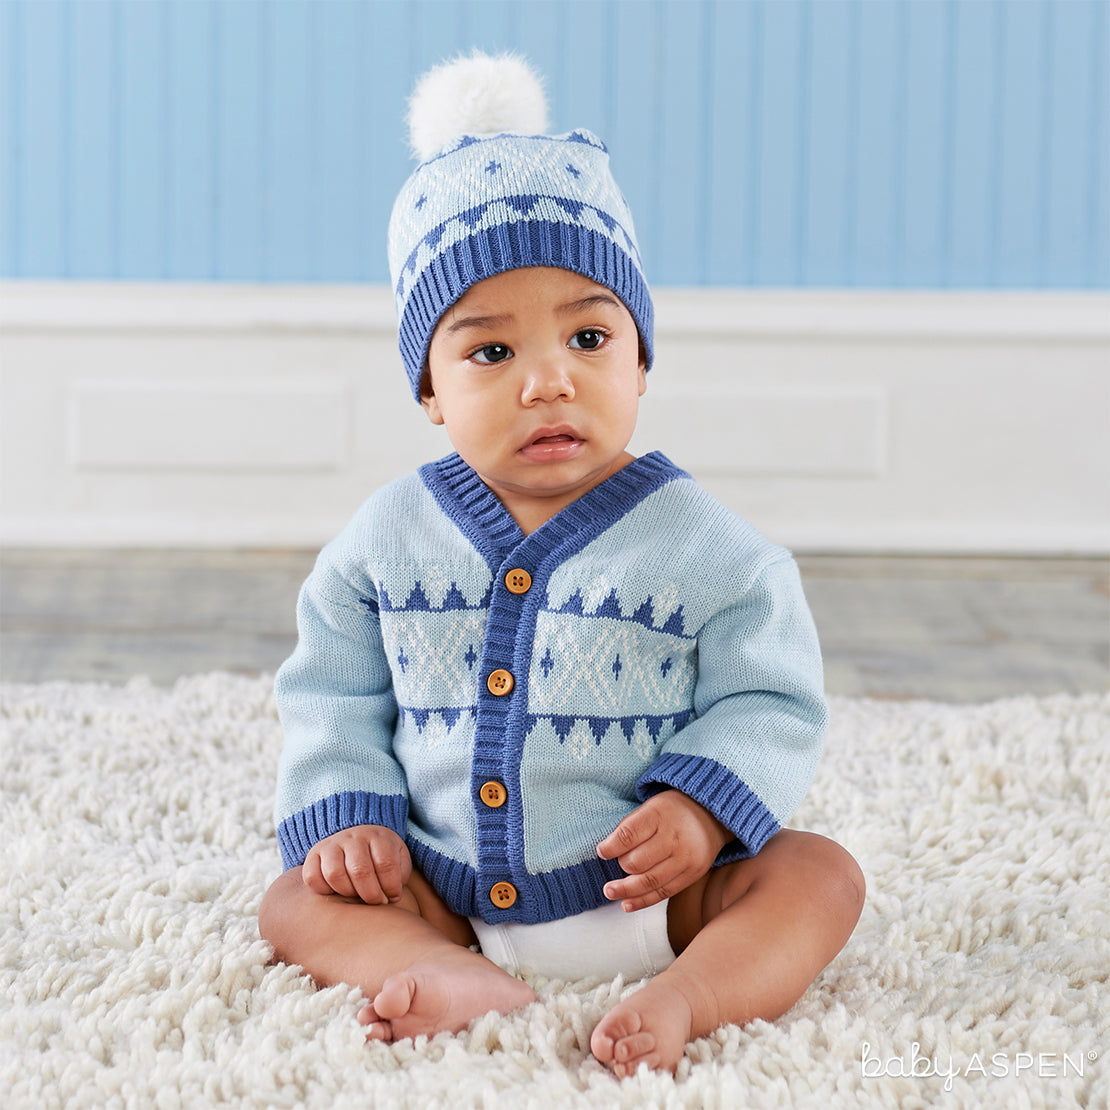 Blue Fair Isle Cardigan and Pom Pom Hat | Holiday Gift Guide: Top 10 Baby Picks for 2018 | Baby Aspen